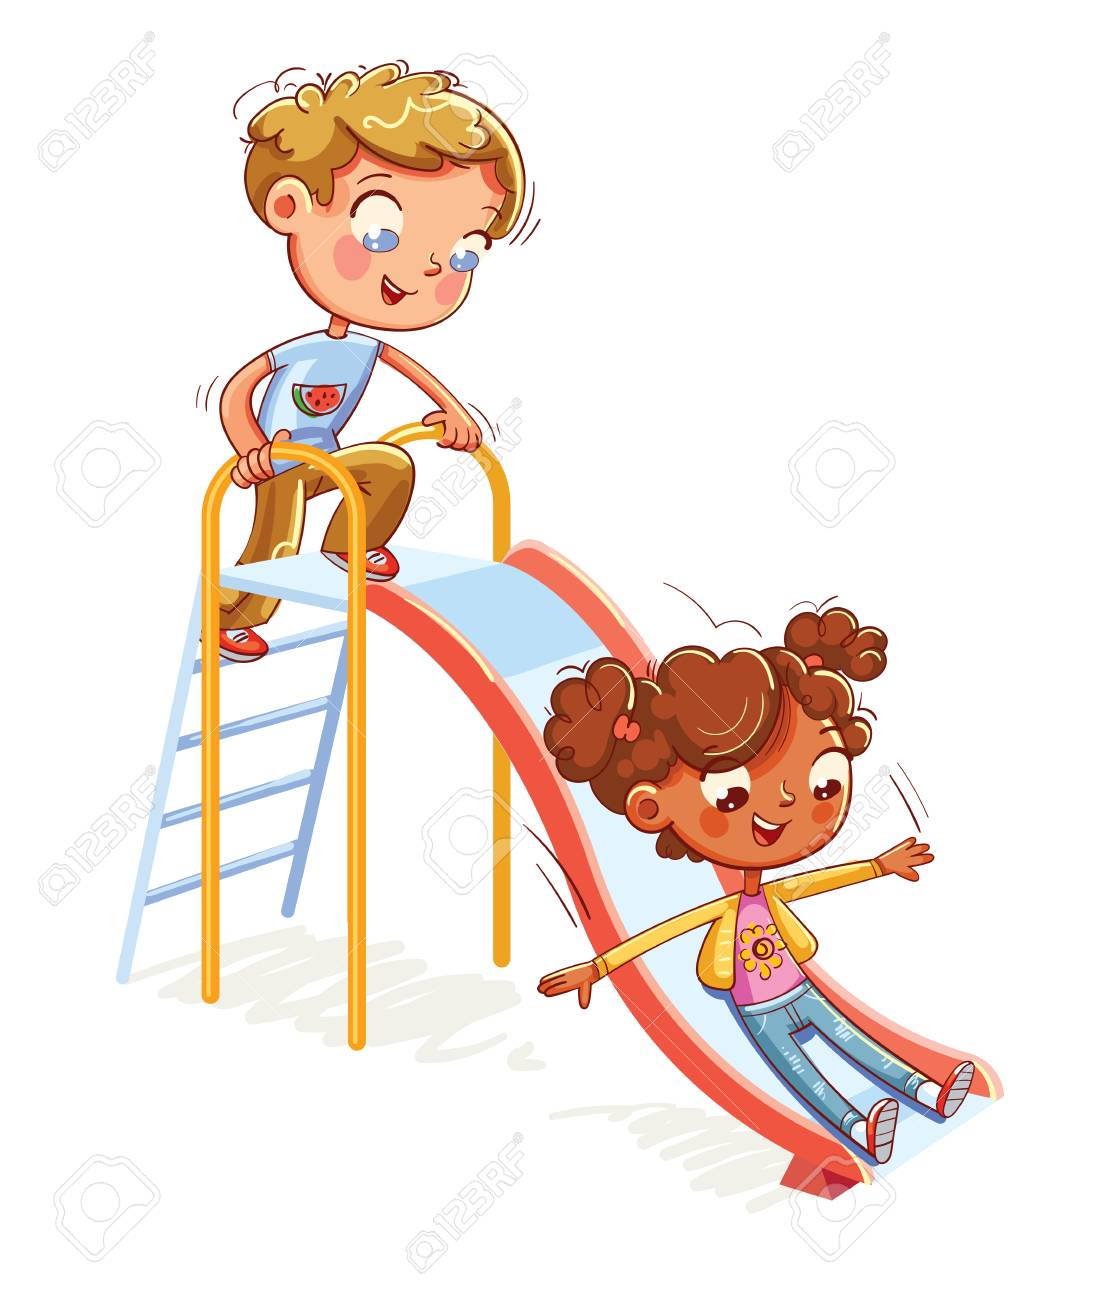 Place for children's games. Amusement park. Children's entertainment complex with stairs and slides in recreation park. Funny cartoon character. Vector illustration. Isolated on white background - 115839485